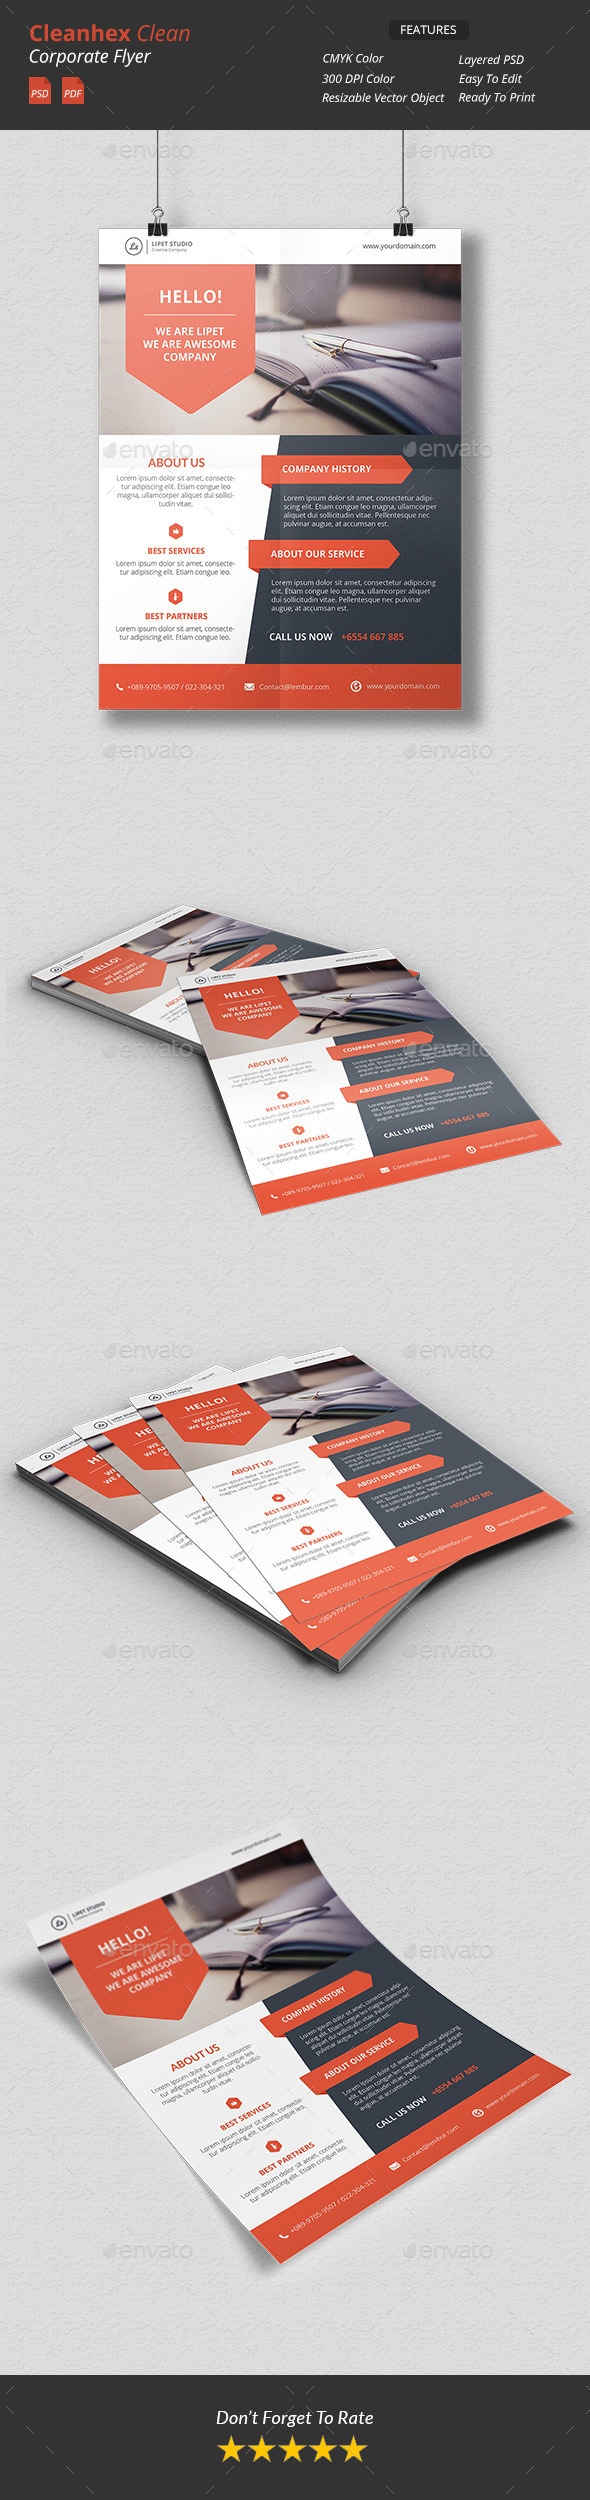 Cleanhex Clean Corporate Flyer v3